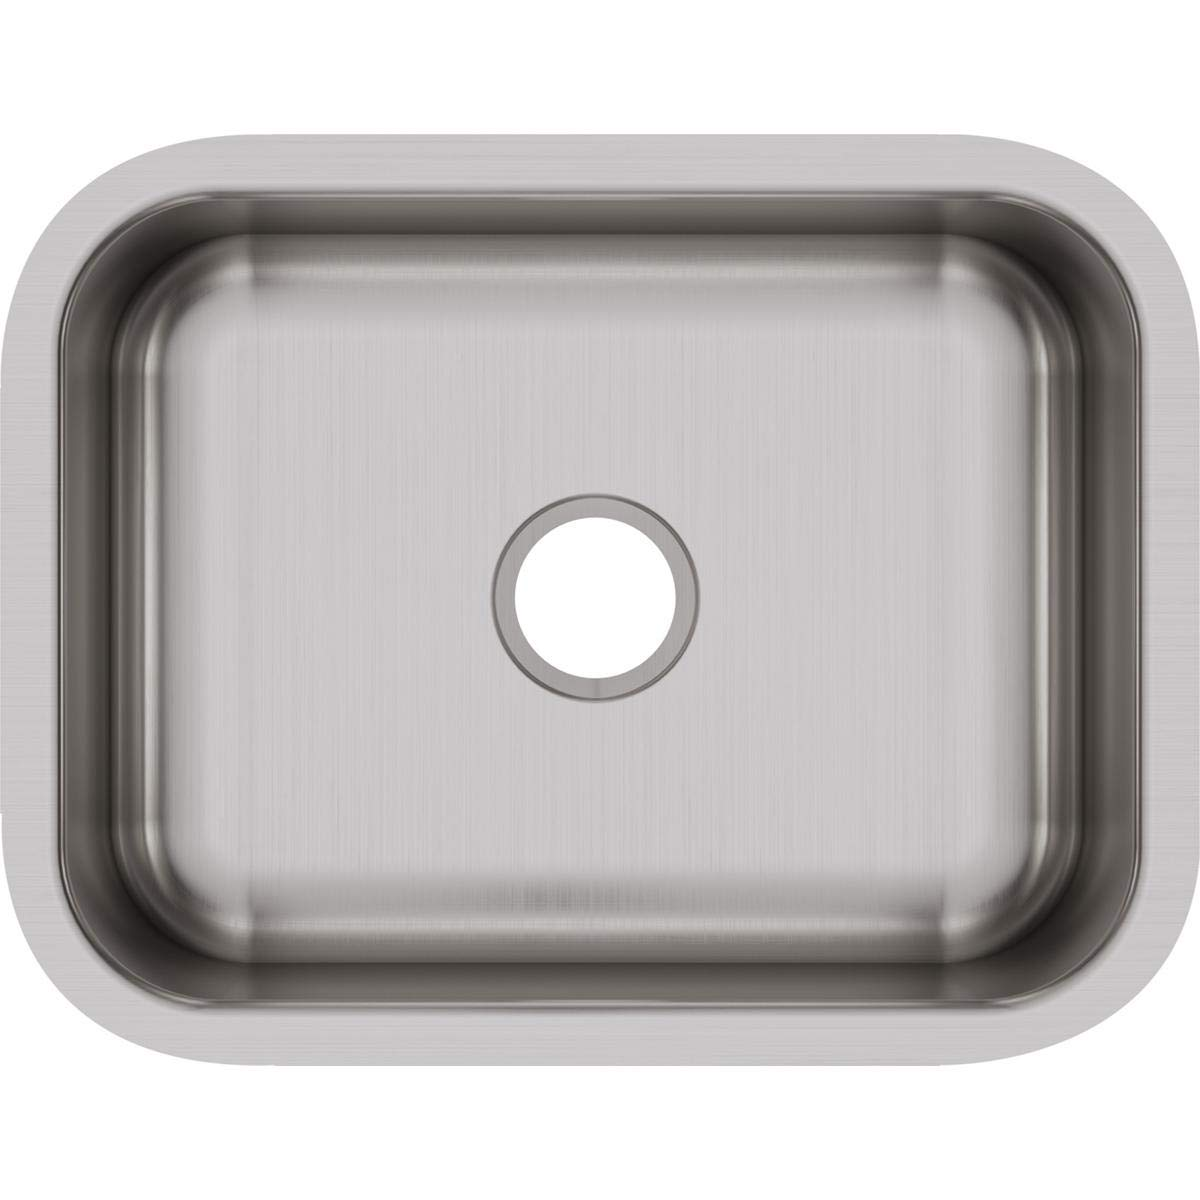 Elkay DXUH2115 Dayton Single Bowl Undermount Stainless Steel Sink